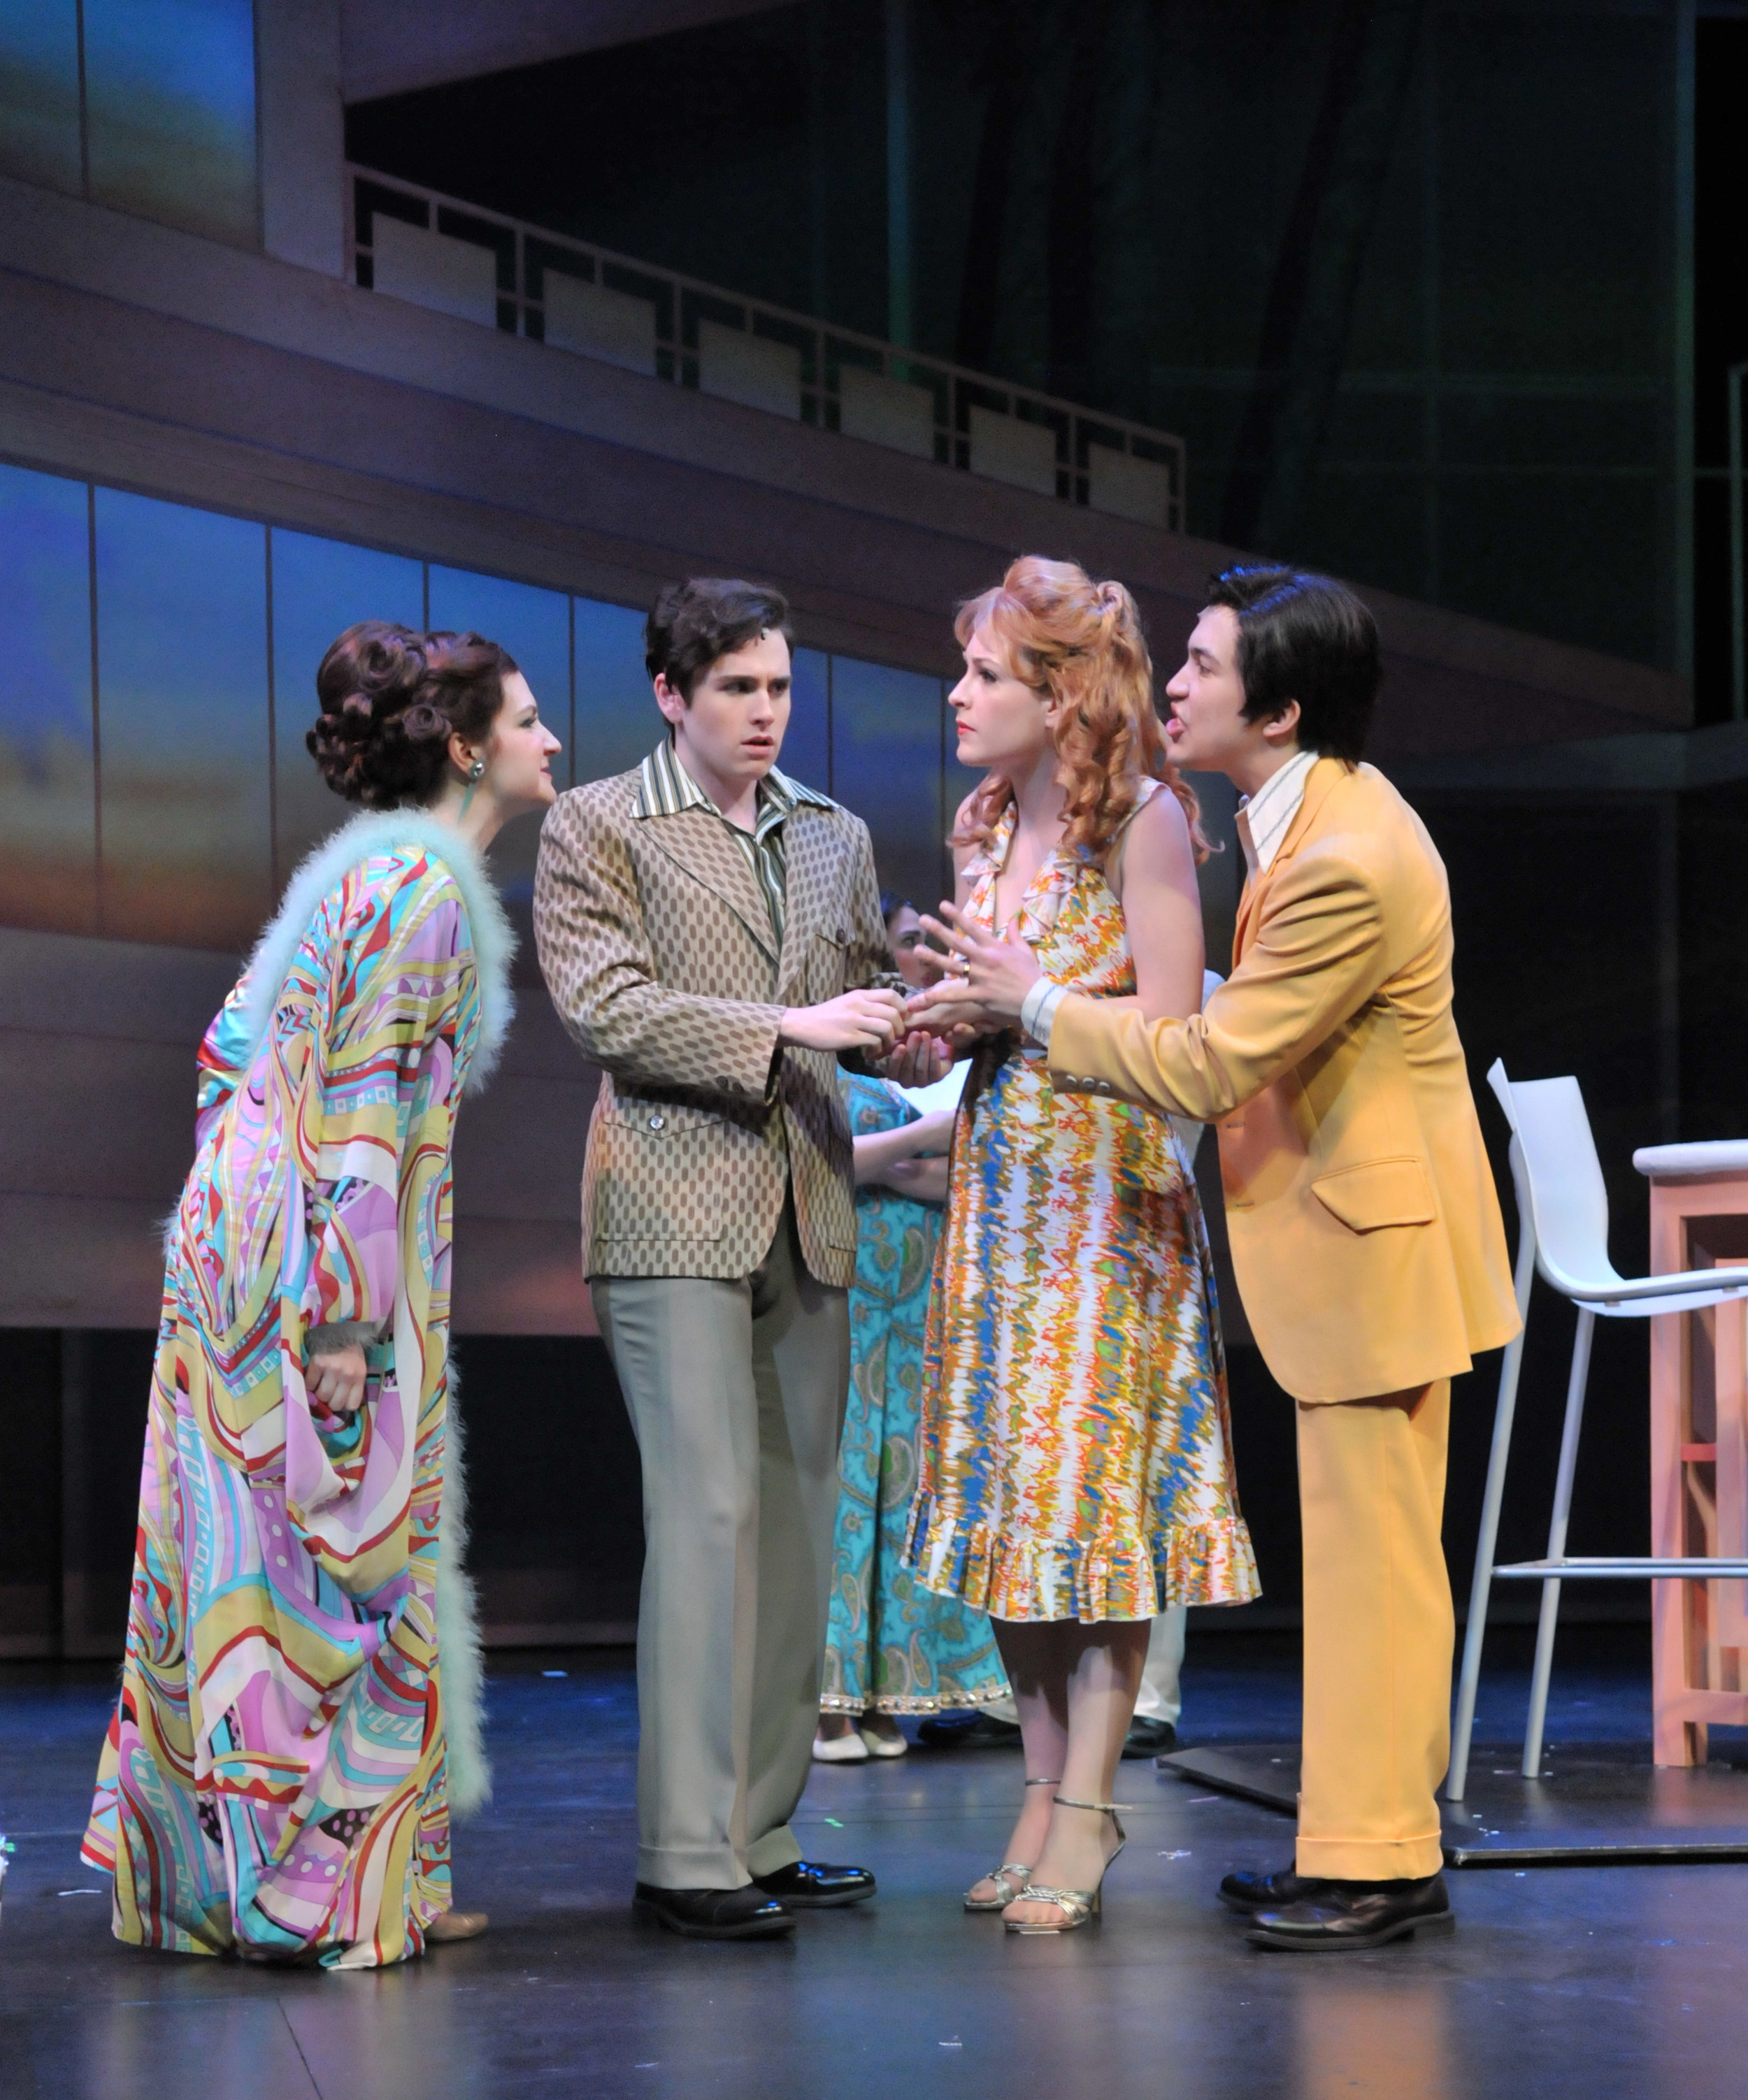 emerson-stage---merrily-we-roll-along_17183420138_o.jpg